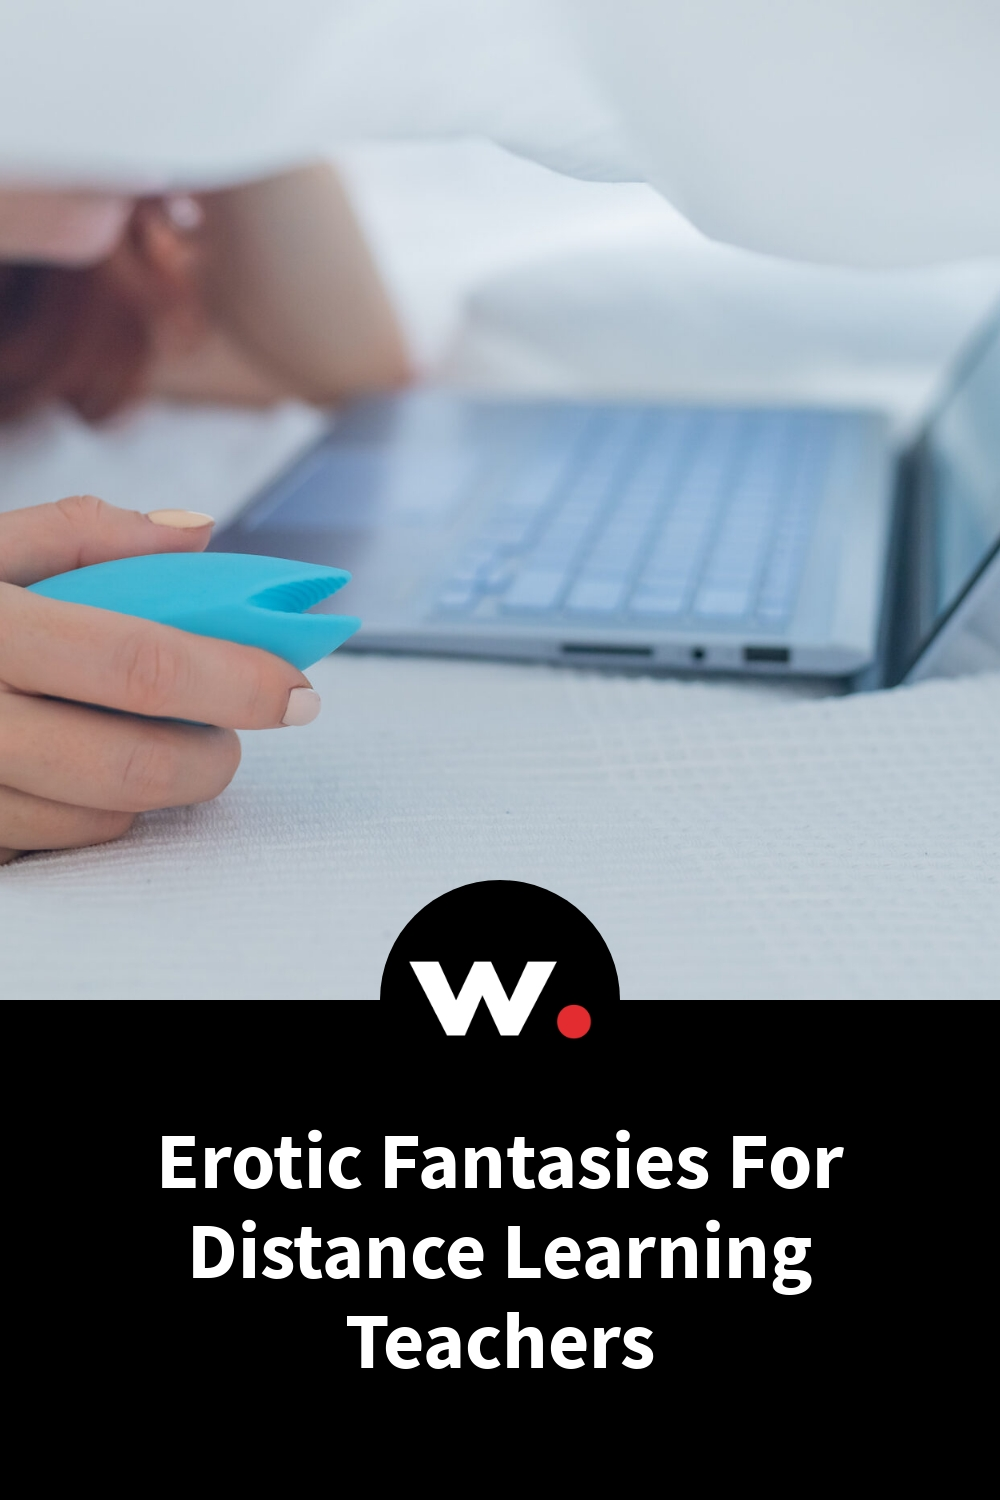 Erotic Fantasies For Distance Learning Teachers